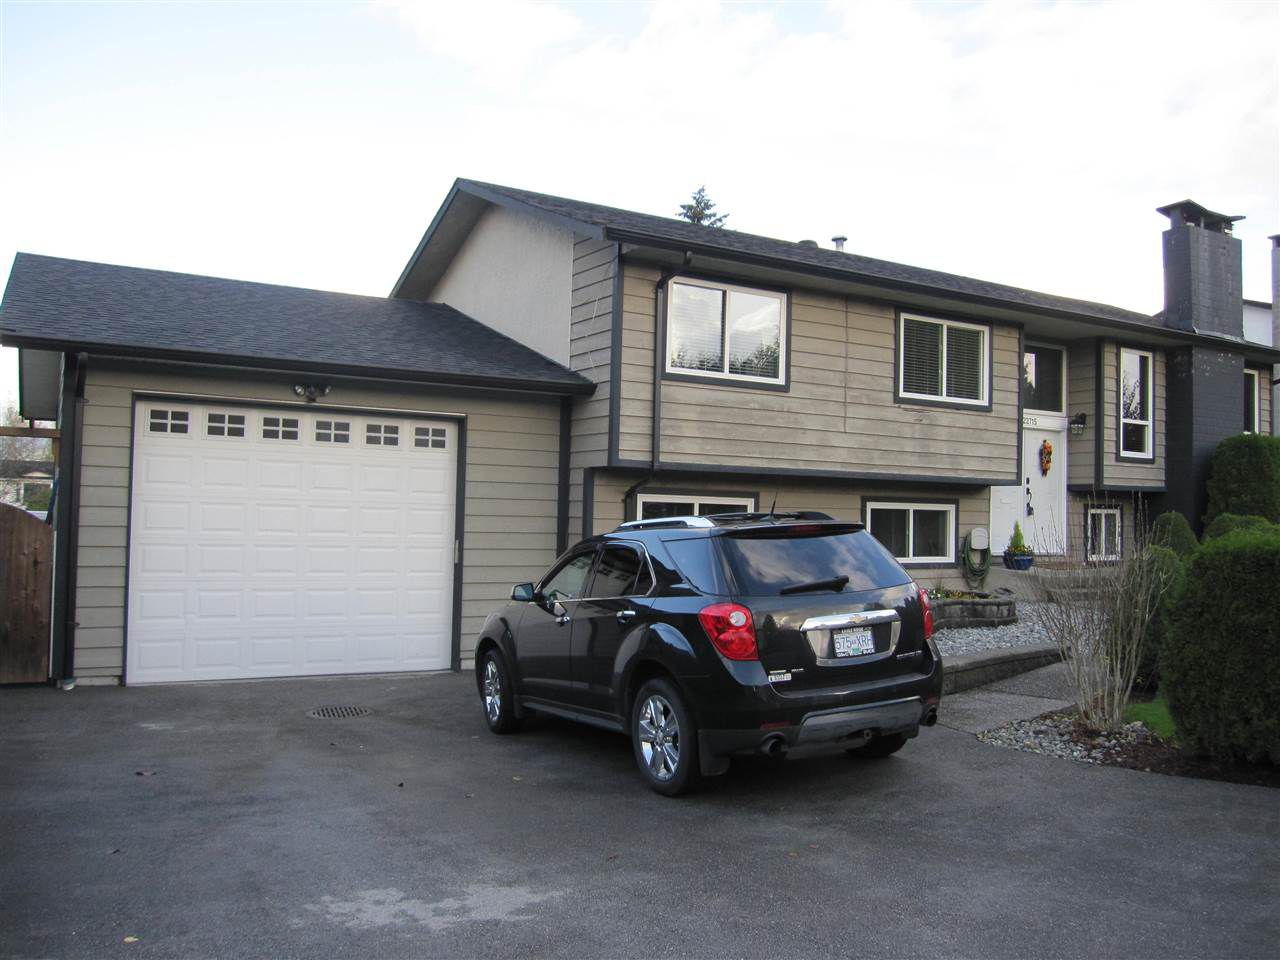 Main Photo: 22715 124 Avenue in Maple Ridge: East Central House for sale : MLS®# R2123558